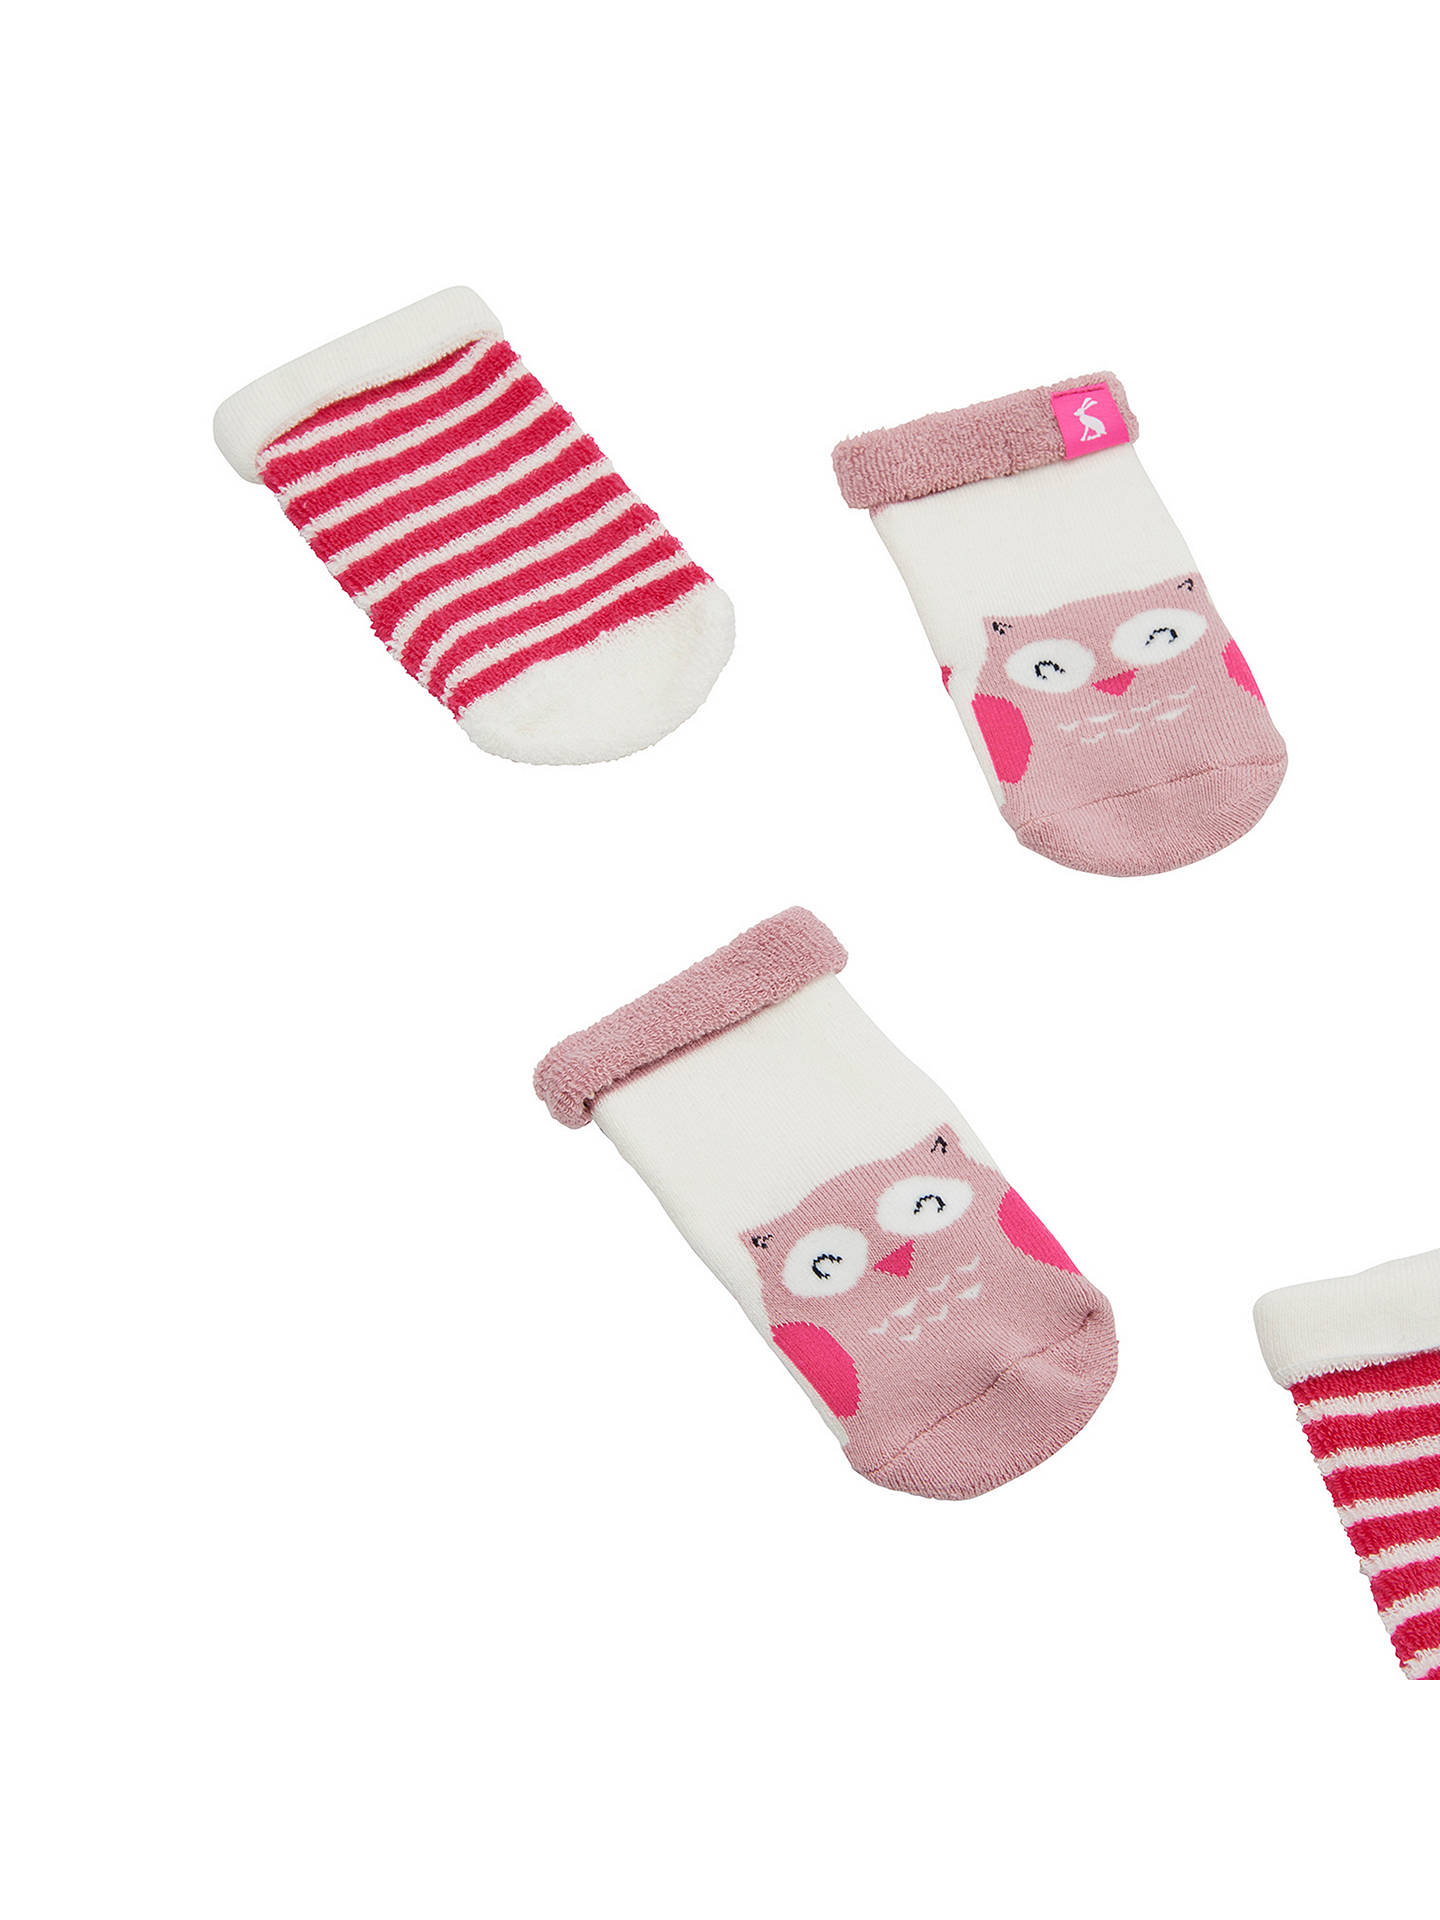 BuyBaby Joule Terry Owl Socks, Pack of 2, Pink, 0-6 months Online at johnlewis.com